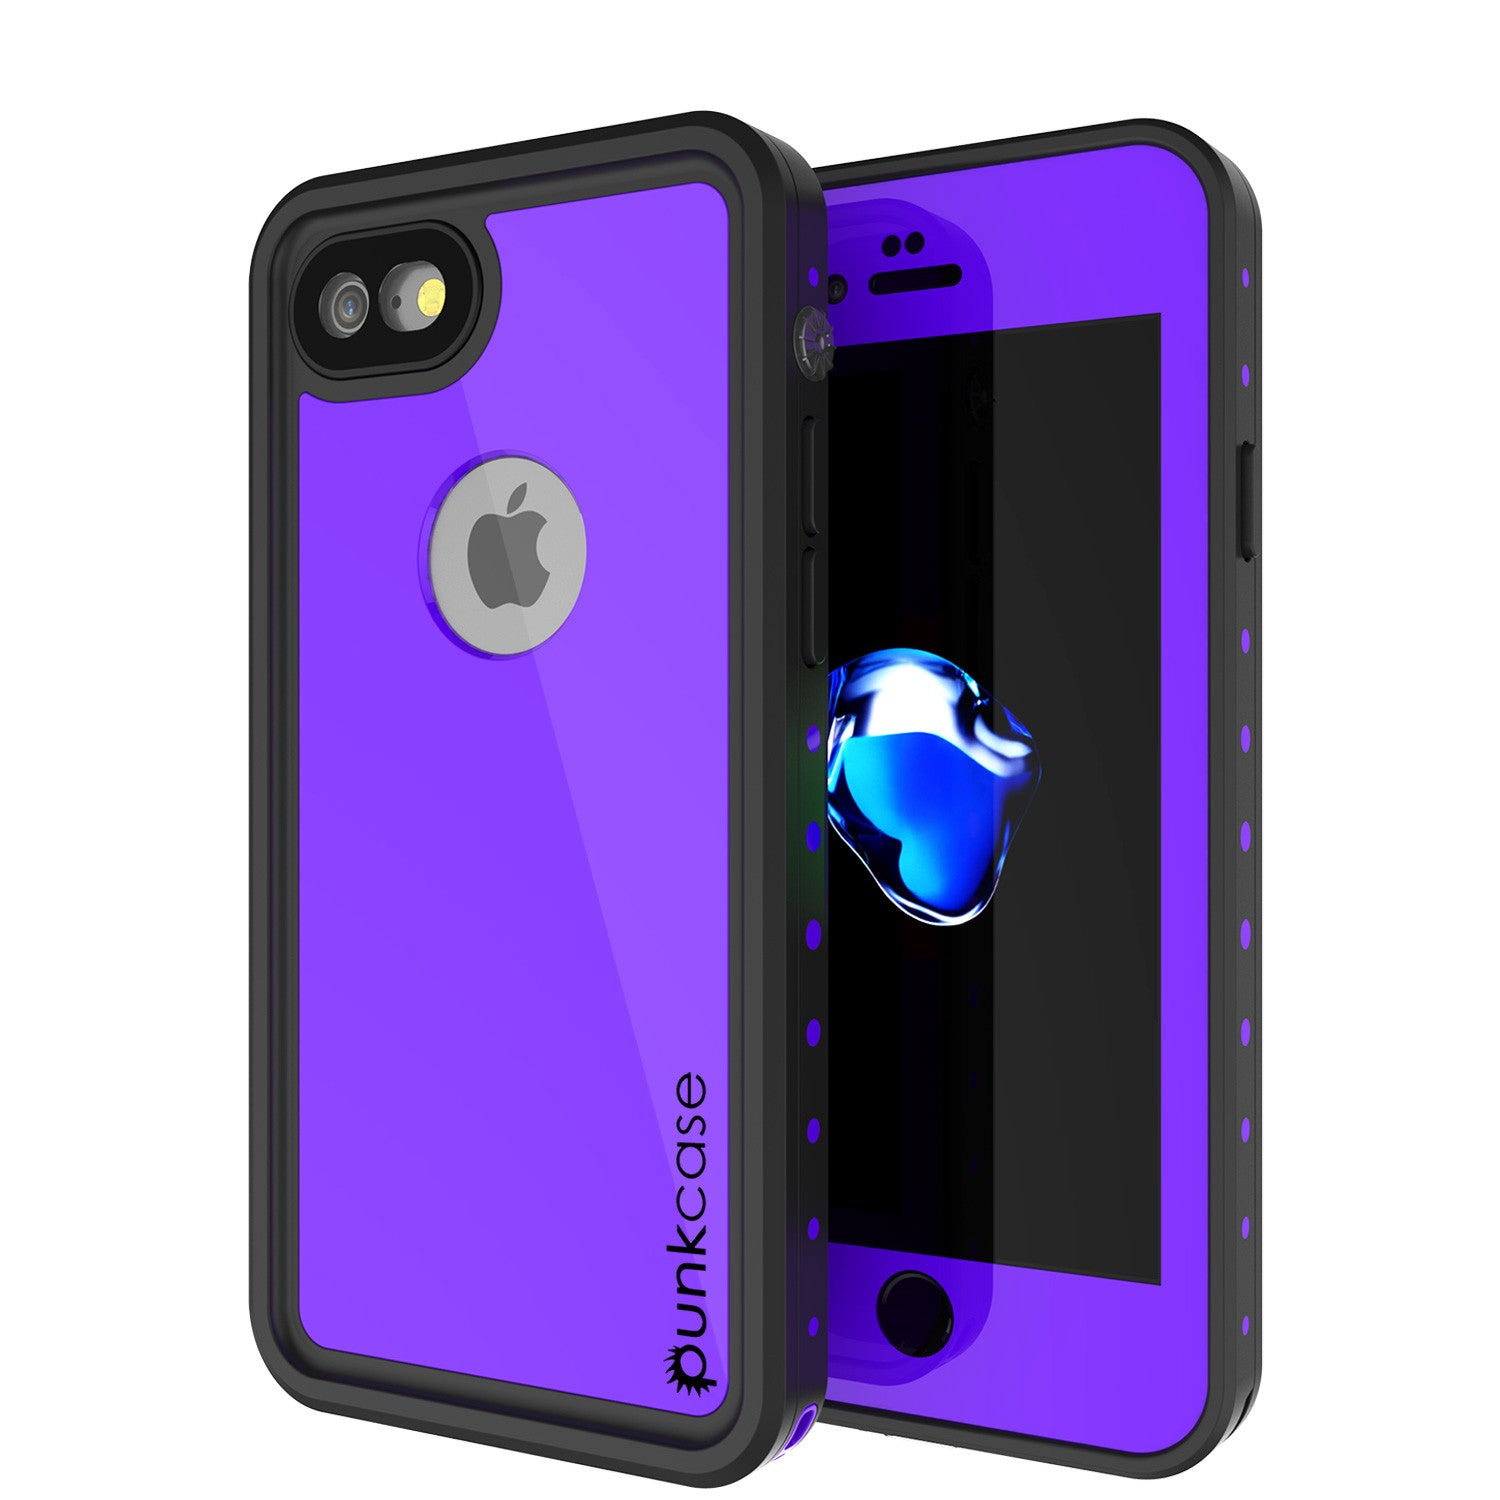 iPhone 7 Waterproof IP68 Case, Punkcase [Puple] [StudStar Series] [Slim Fit] [Dirtproof] [Snowproof]